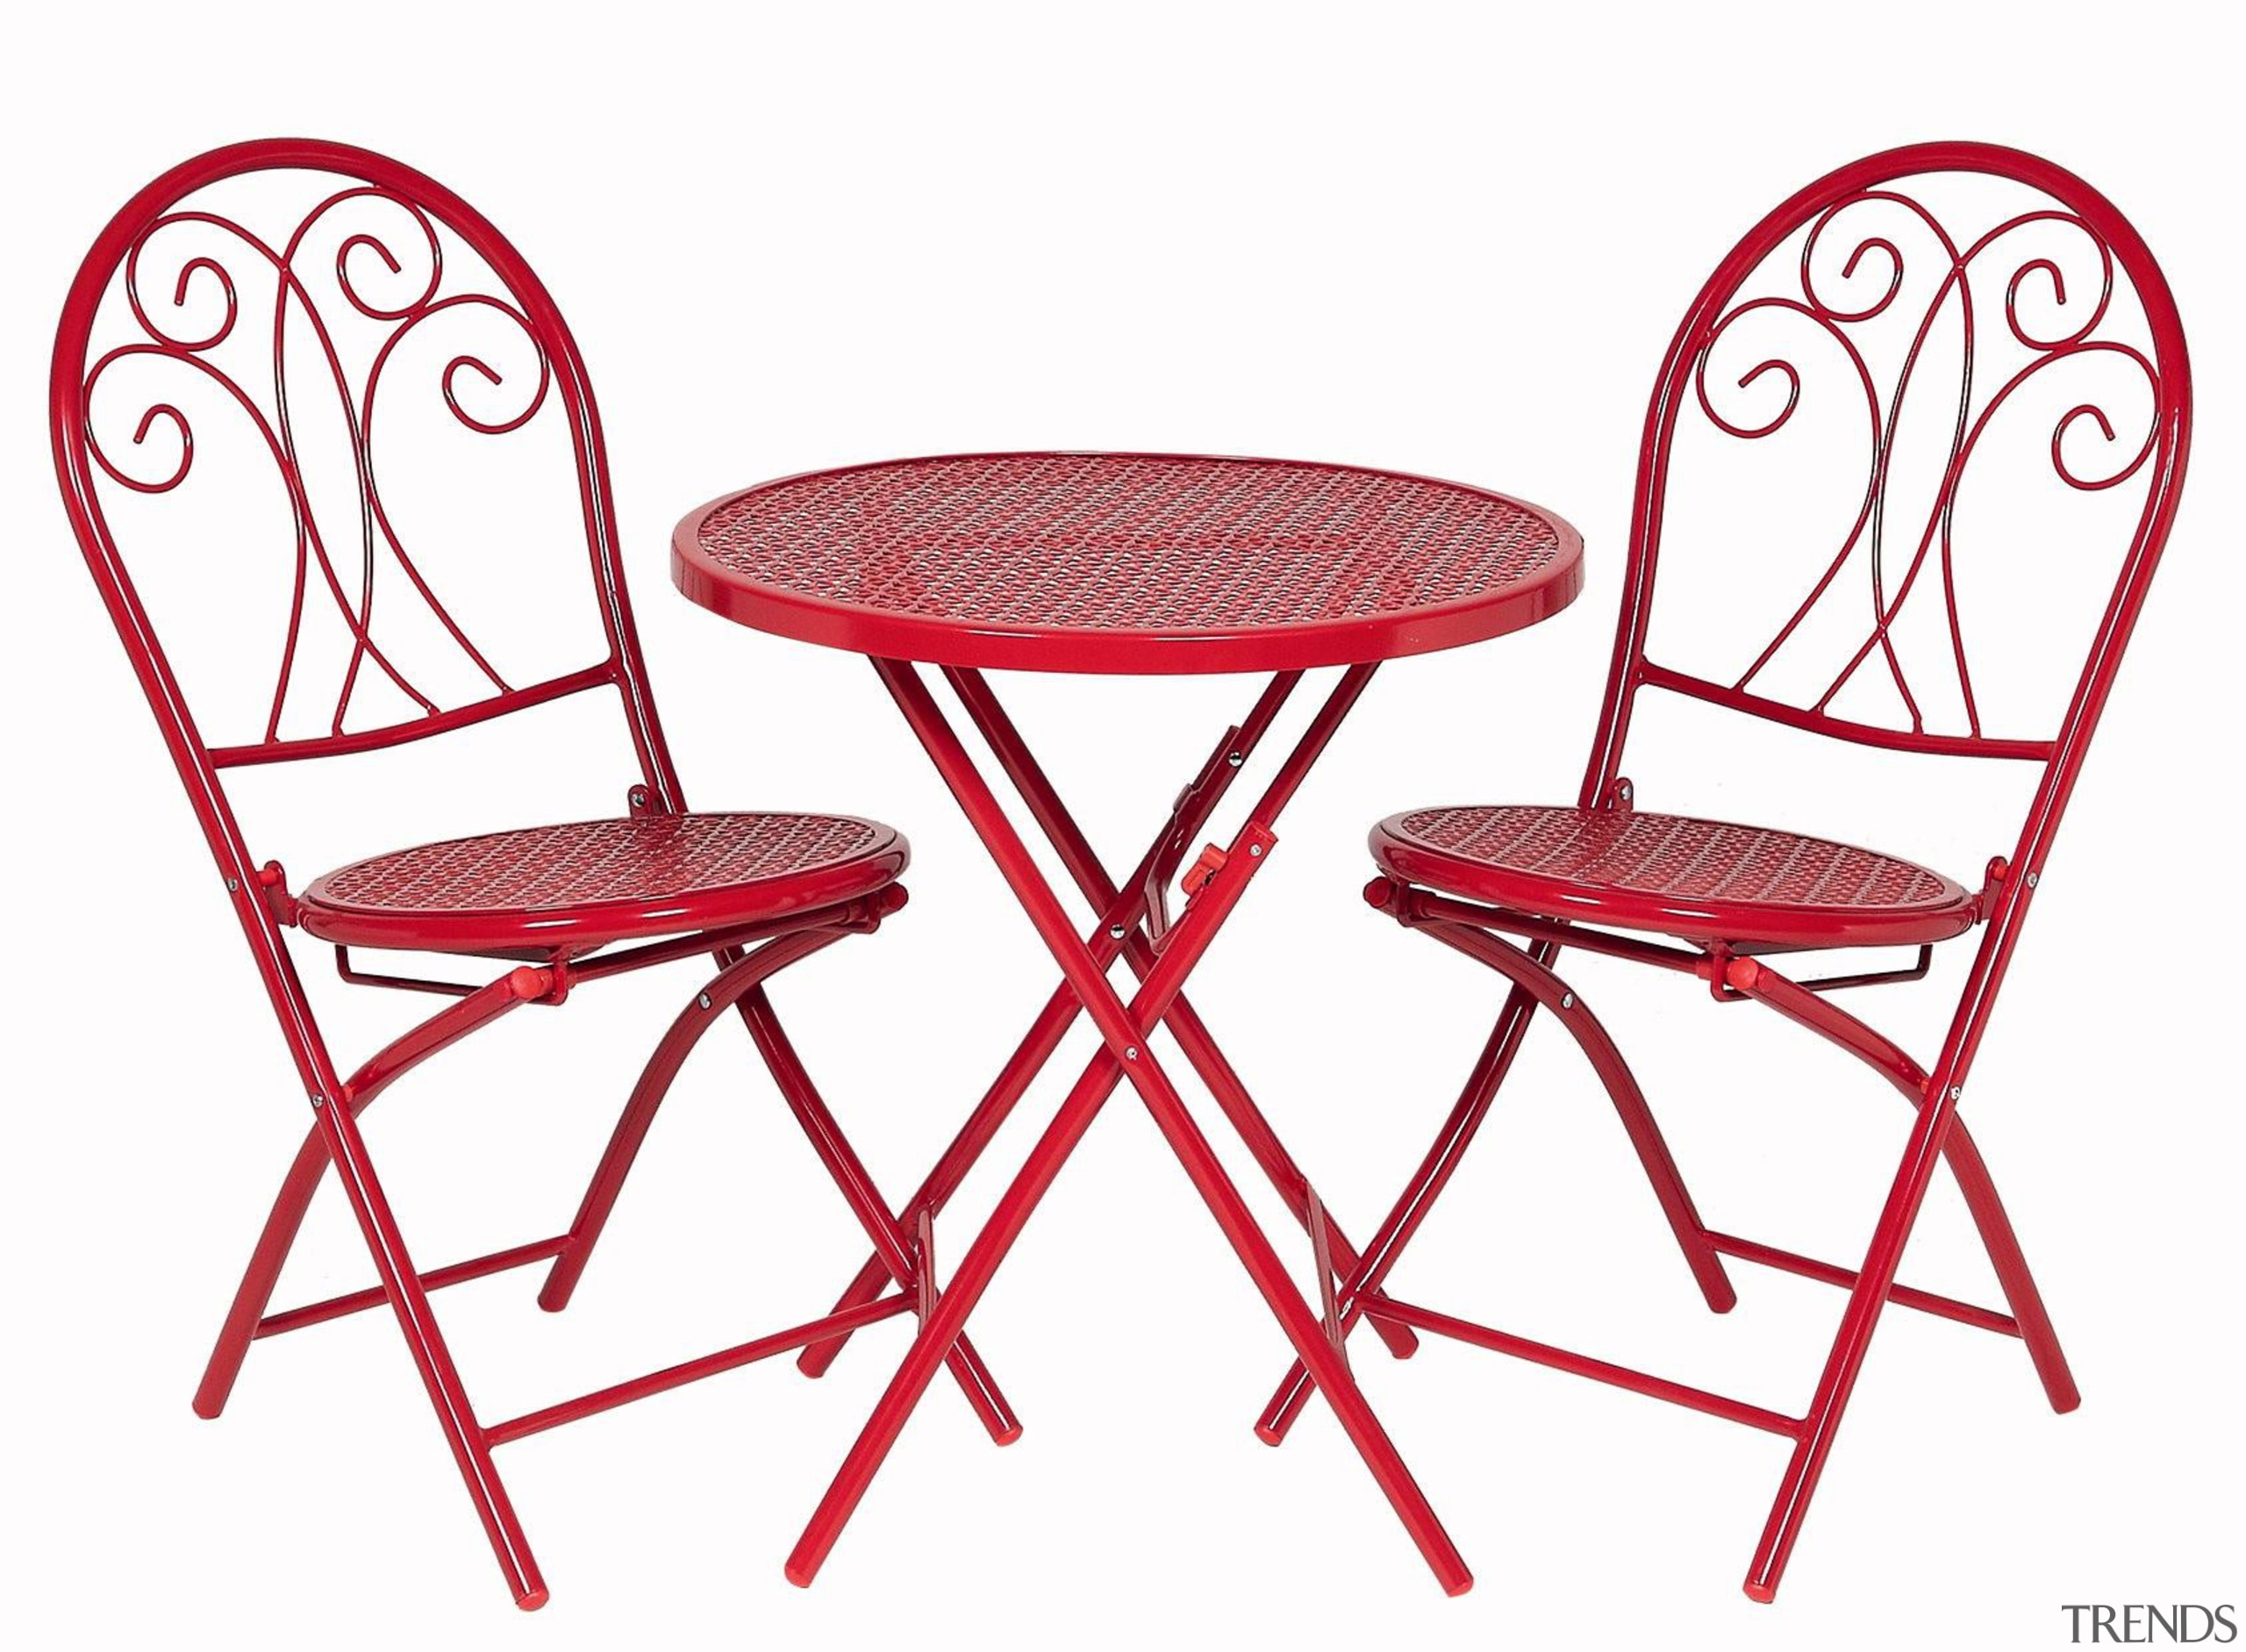 There's nothing quite like a Kiwi summer – area, chair, furniture, line, outdoor furniture, outdoor table, product, product design, table, white